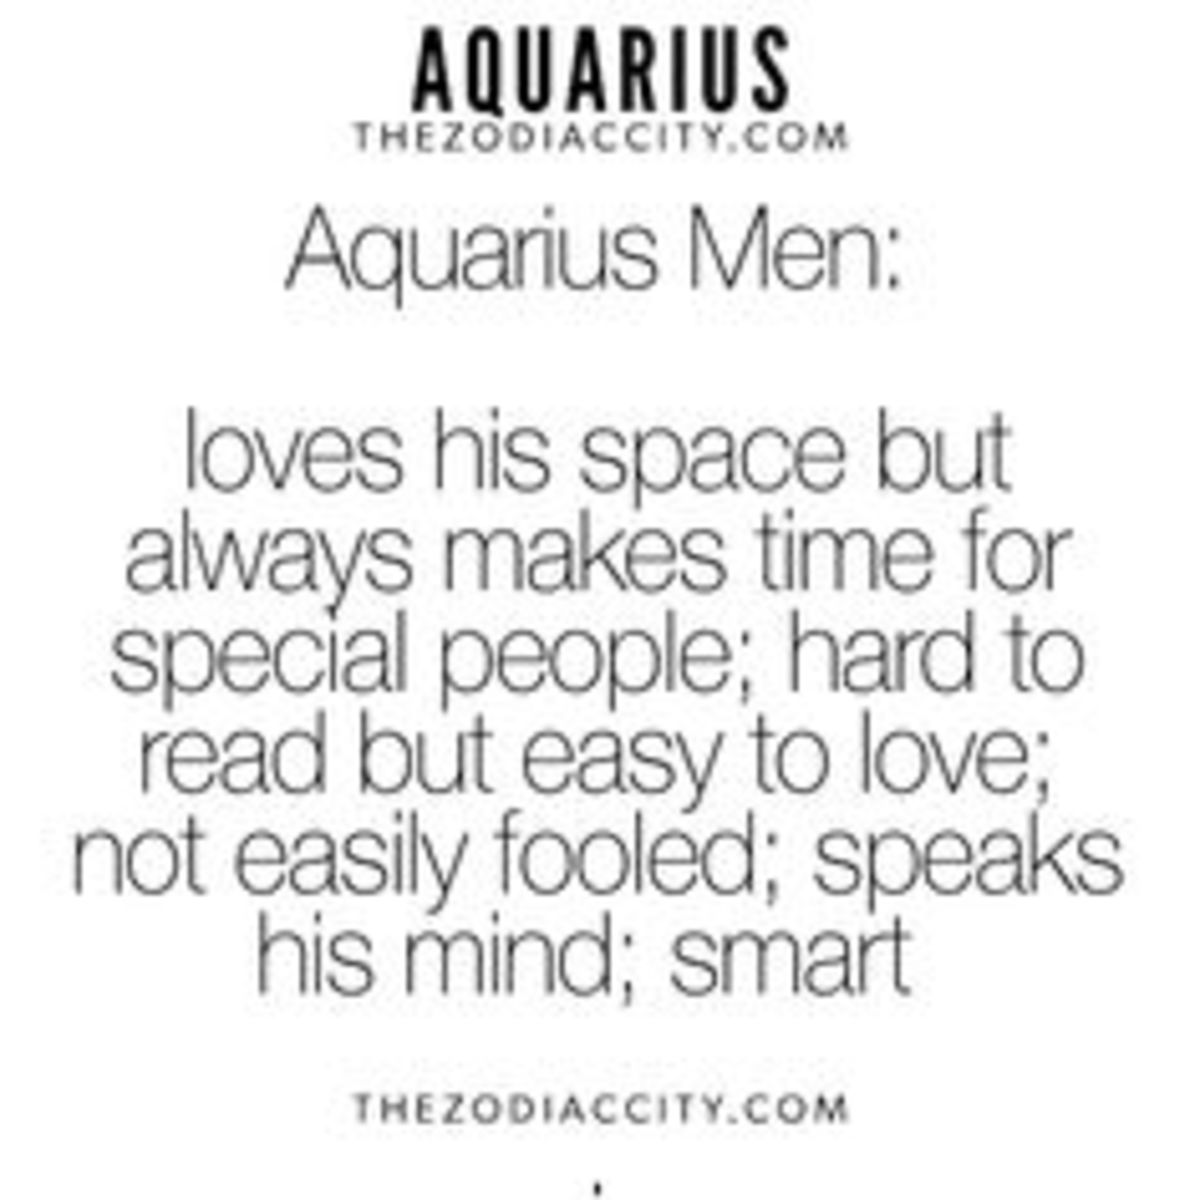 Aries Woman Aquarius Man - A Promising Relationship